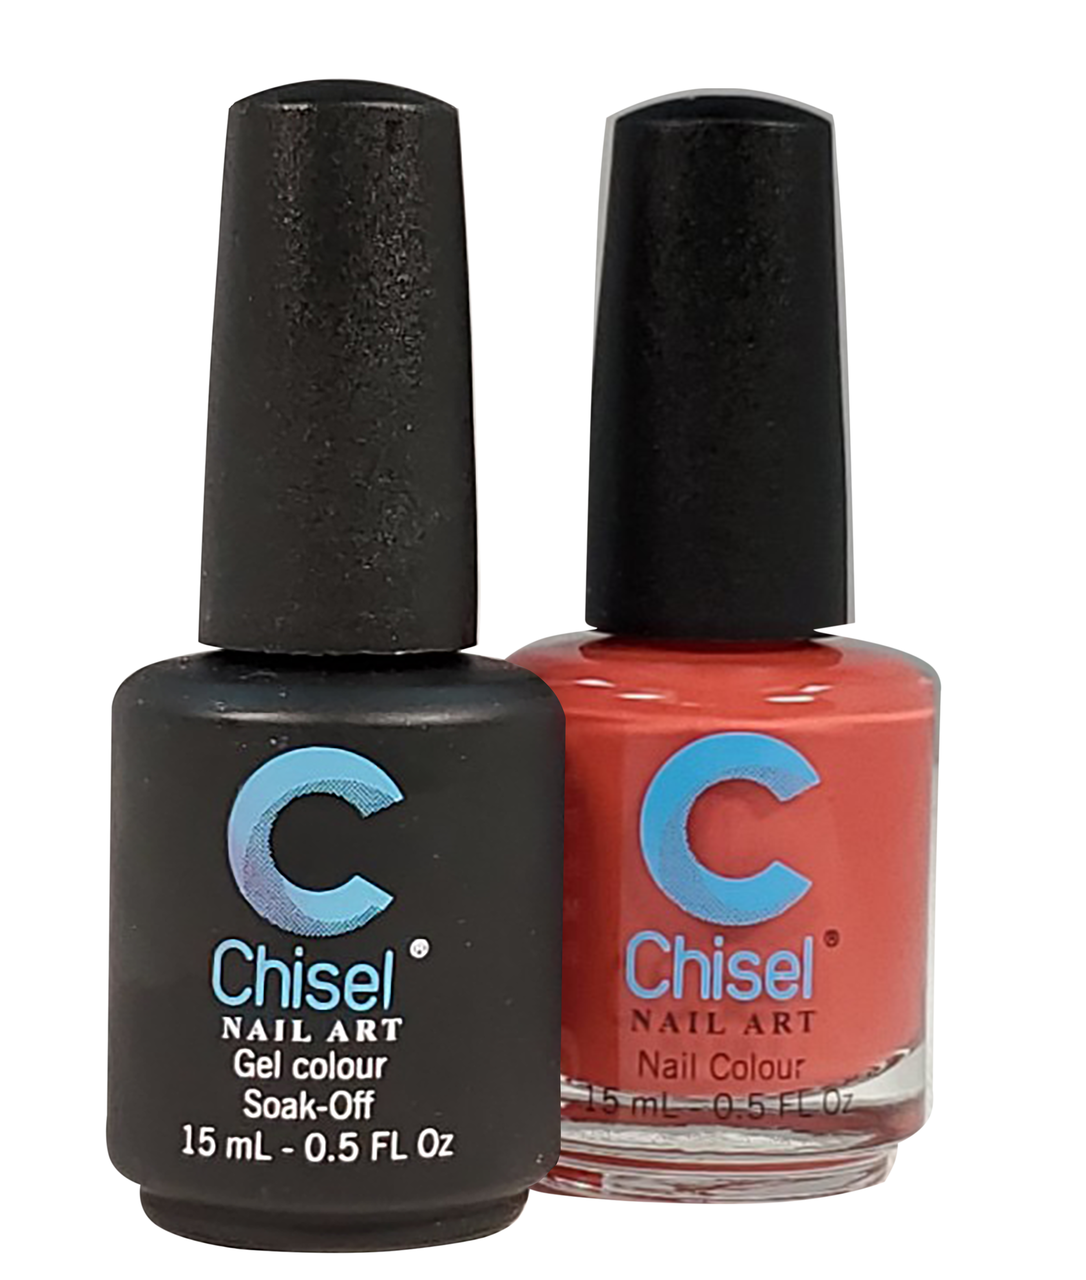 Chisel Matching Gel + Lacquer Duo - Solid 22